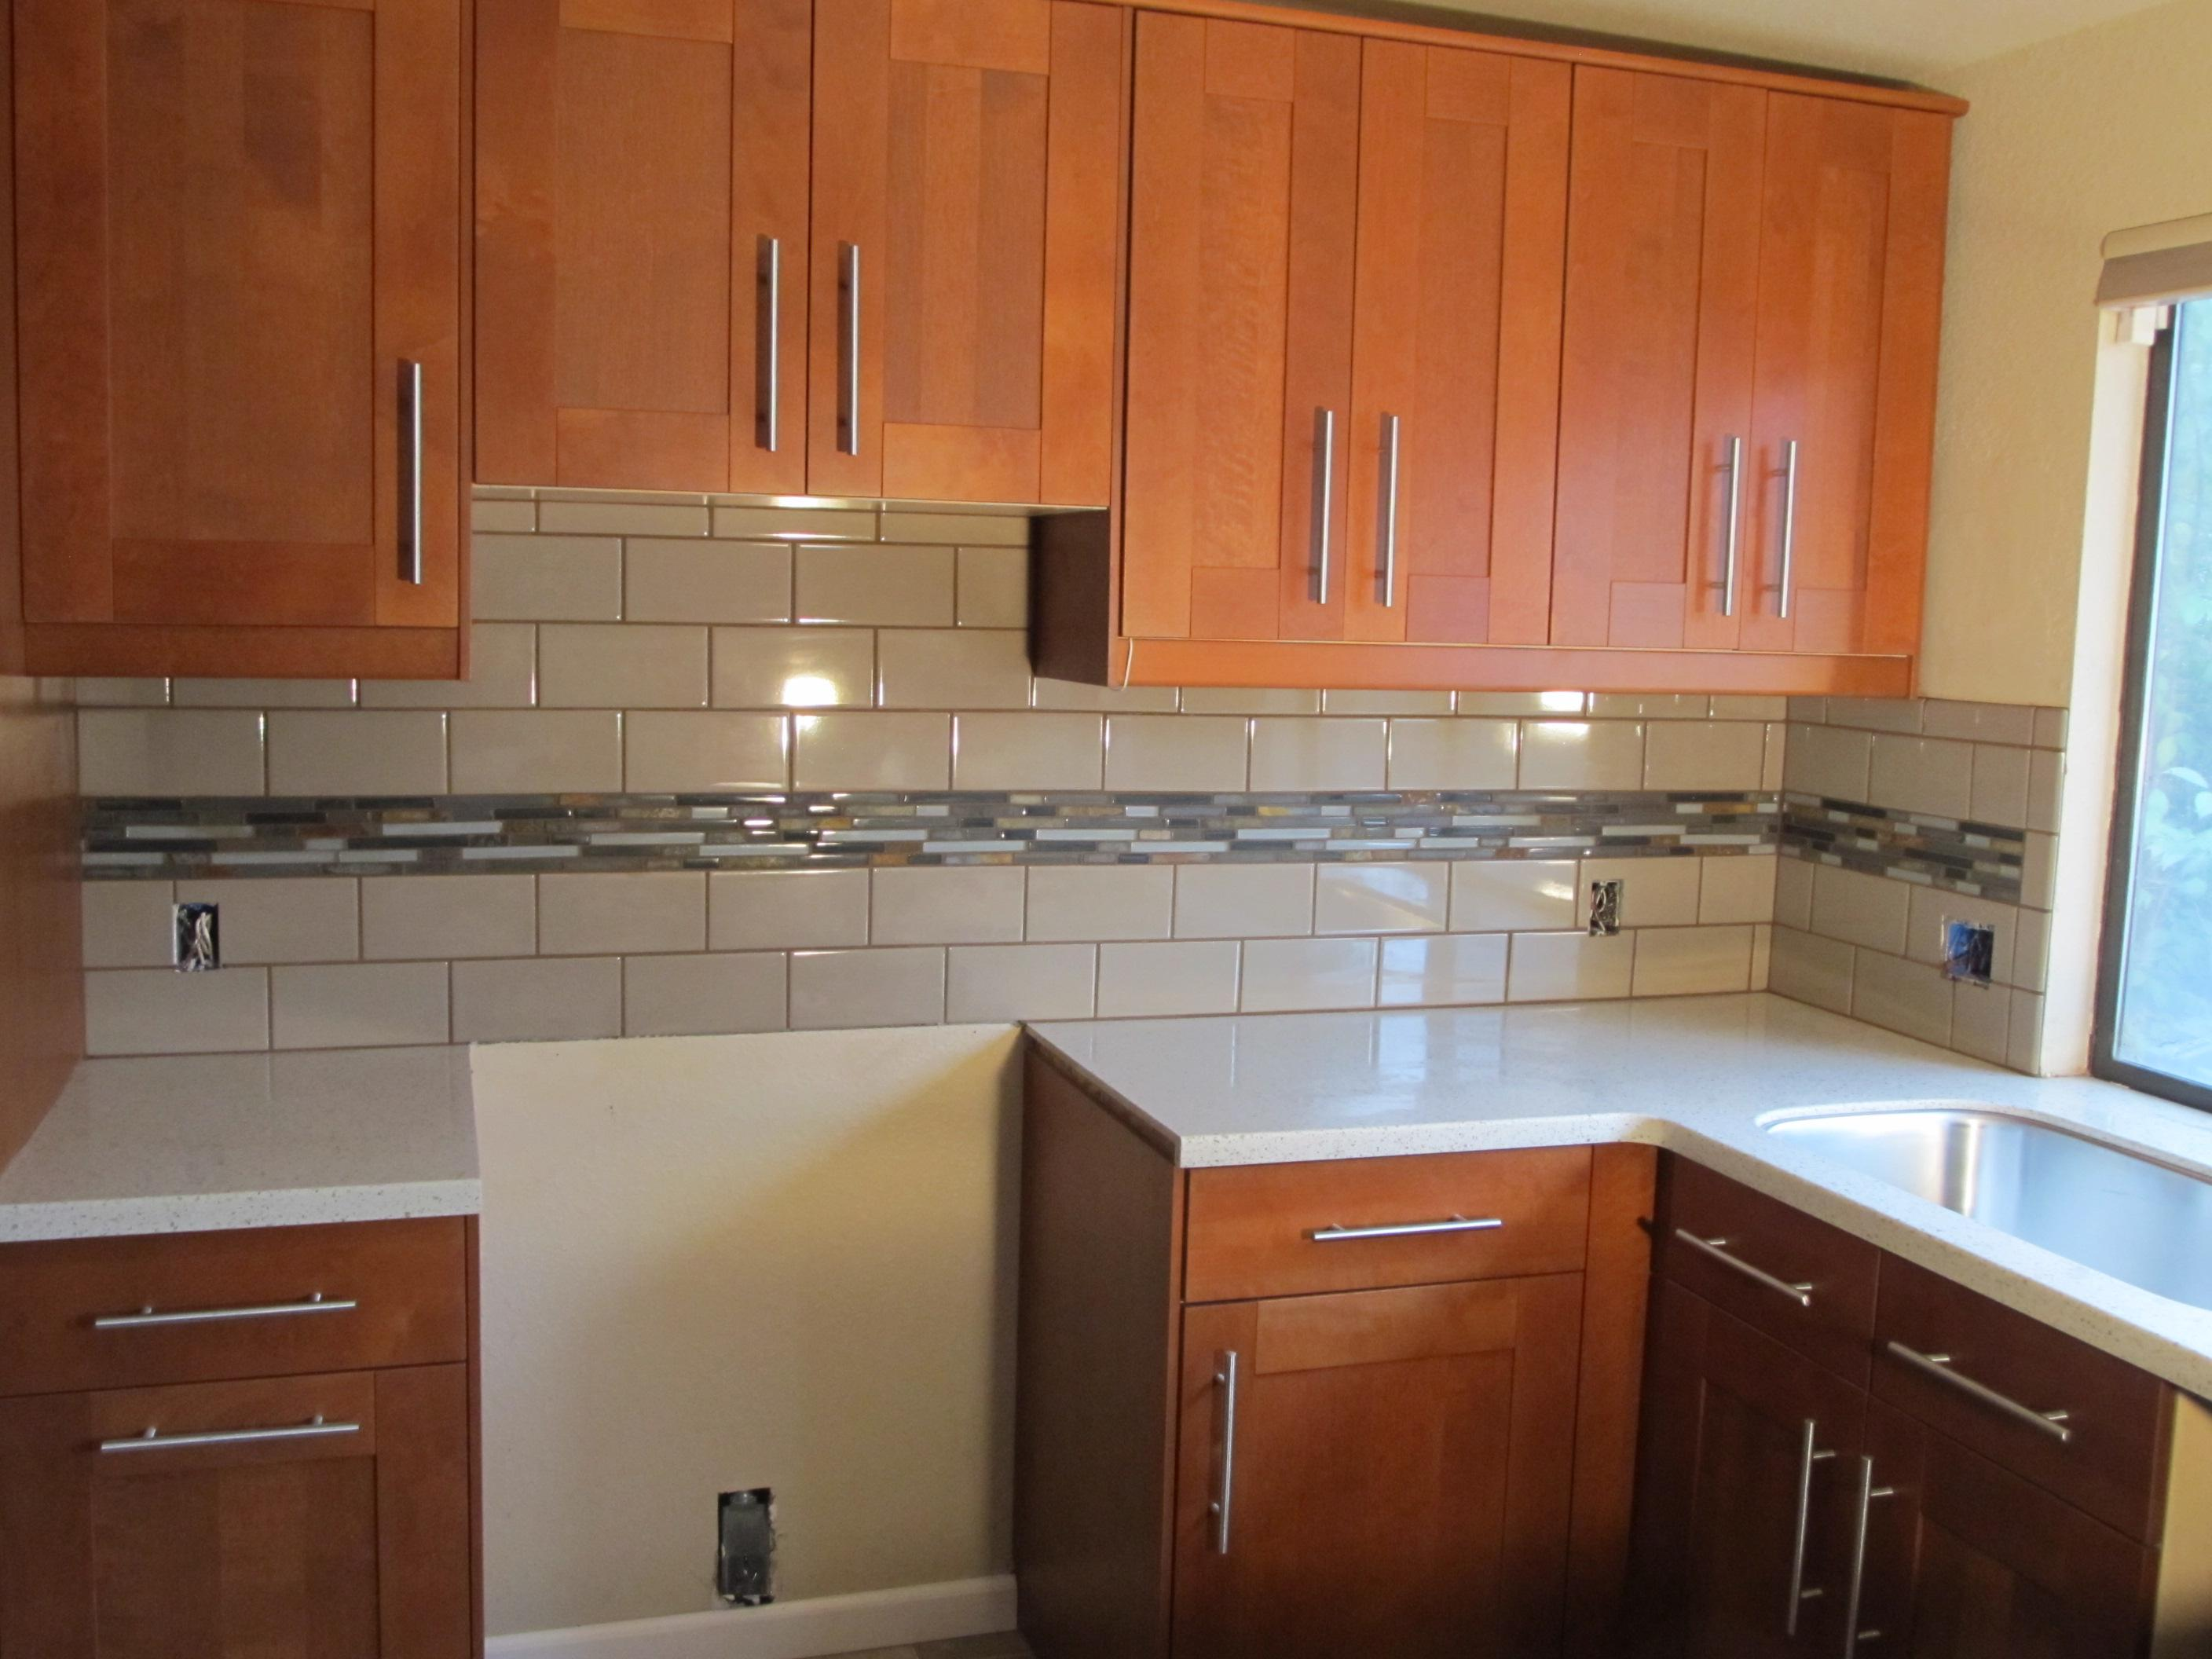 Image of: kitchen subway tile backsplash